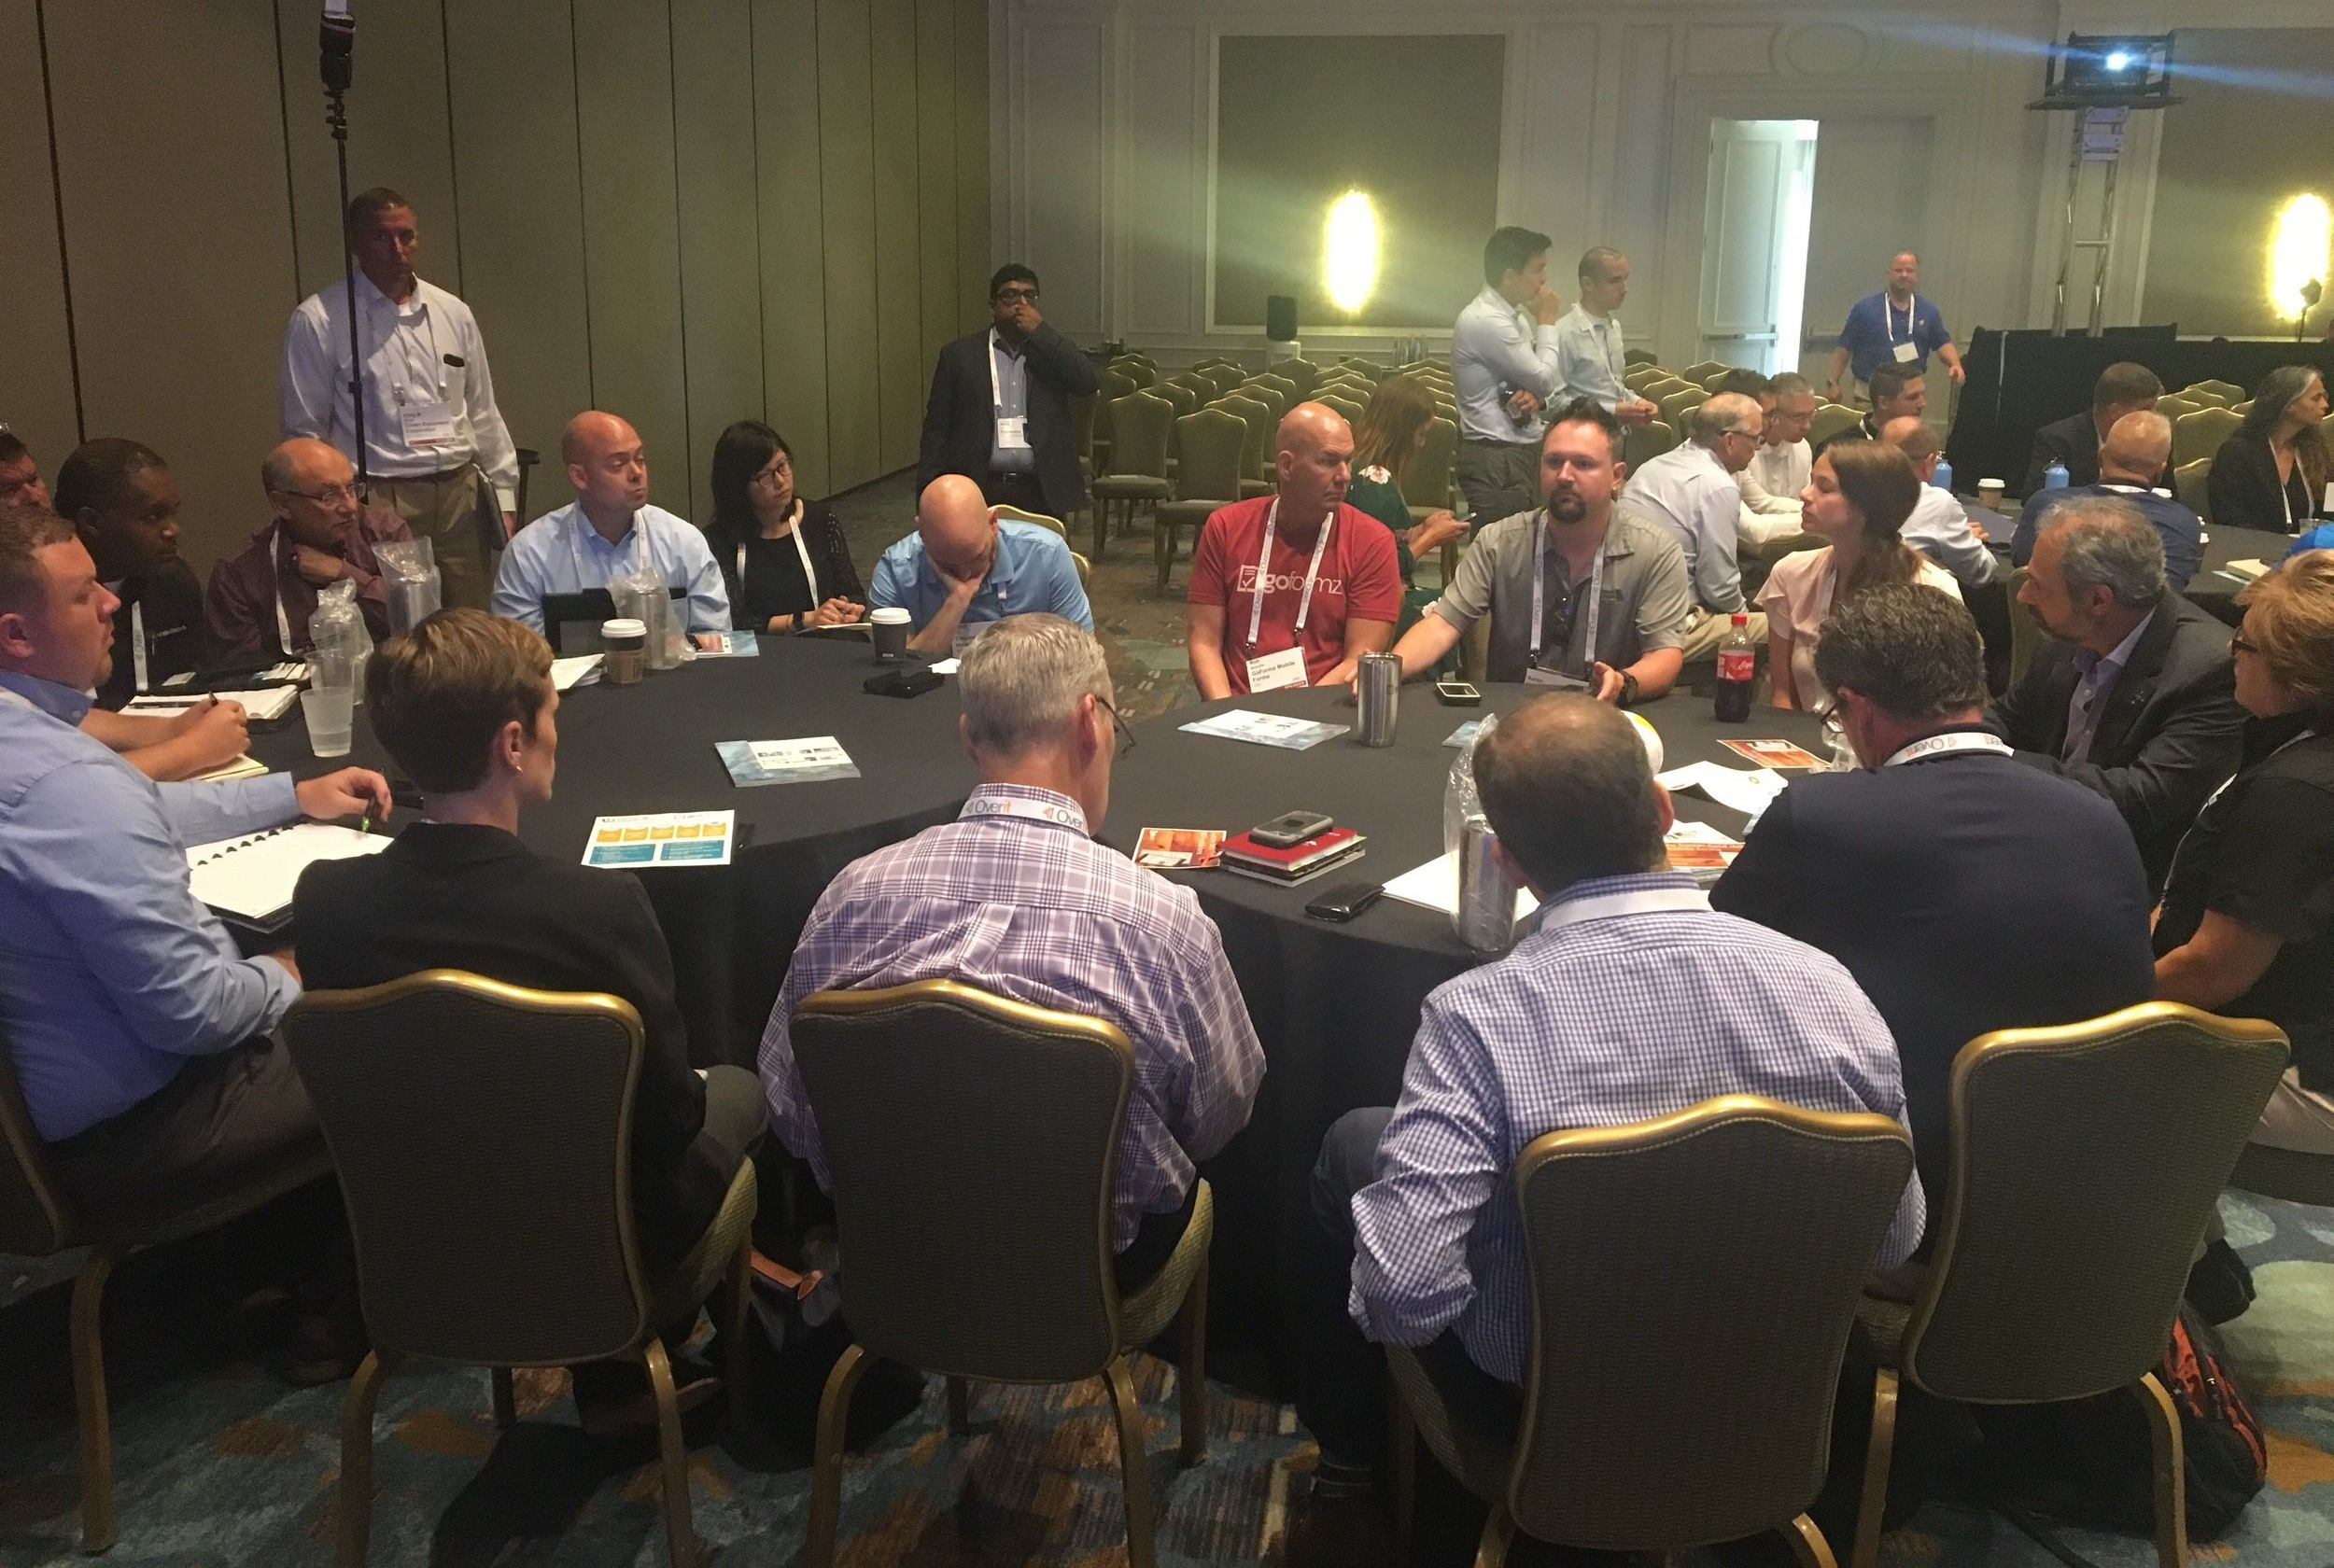 A dozen field service amelia island attendees join GoFormz CEO and Oscar W. Larson CTO for a roundtable discussion